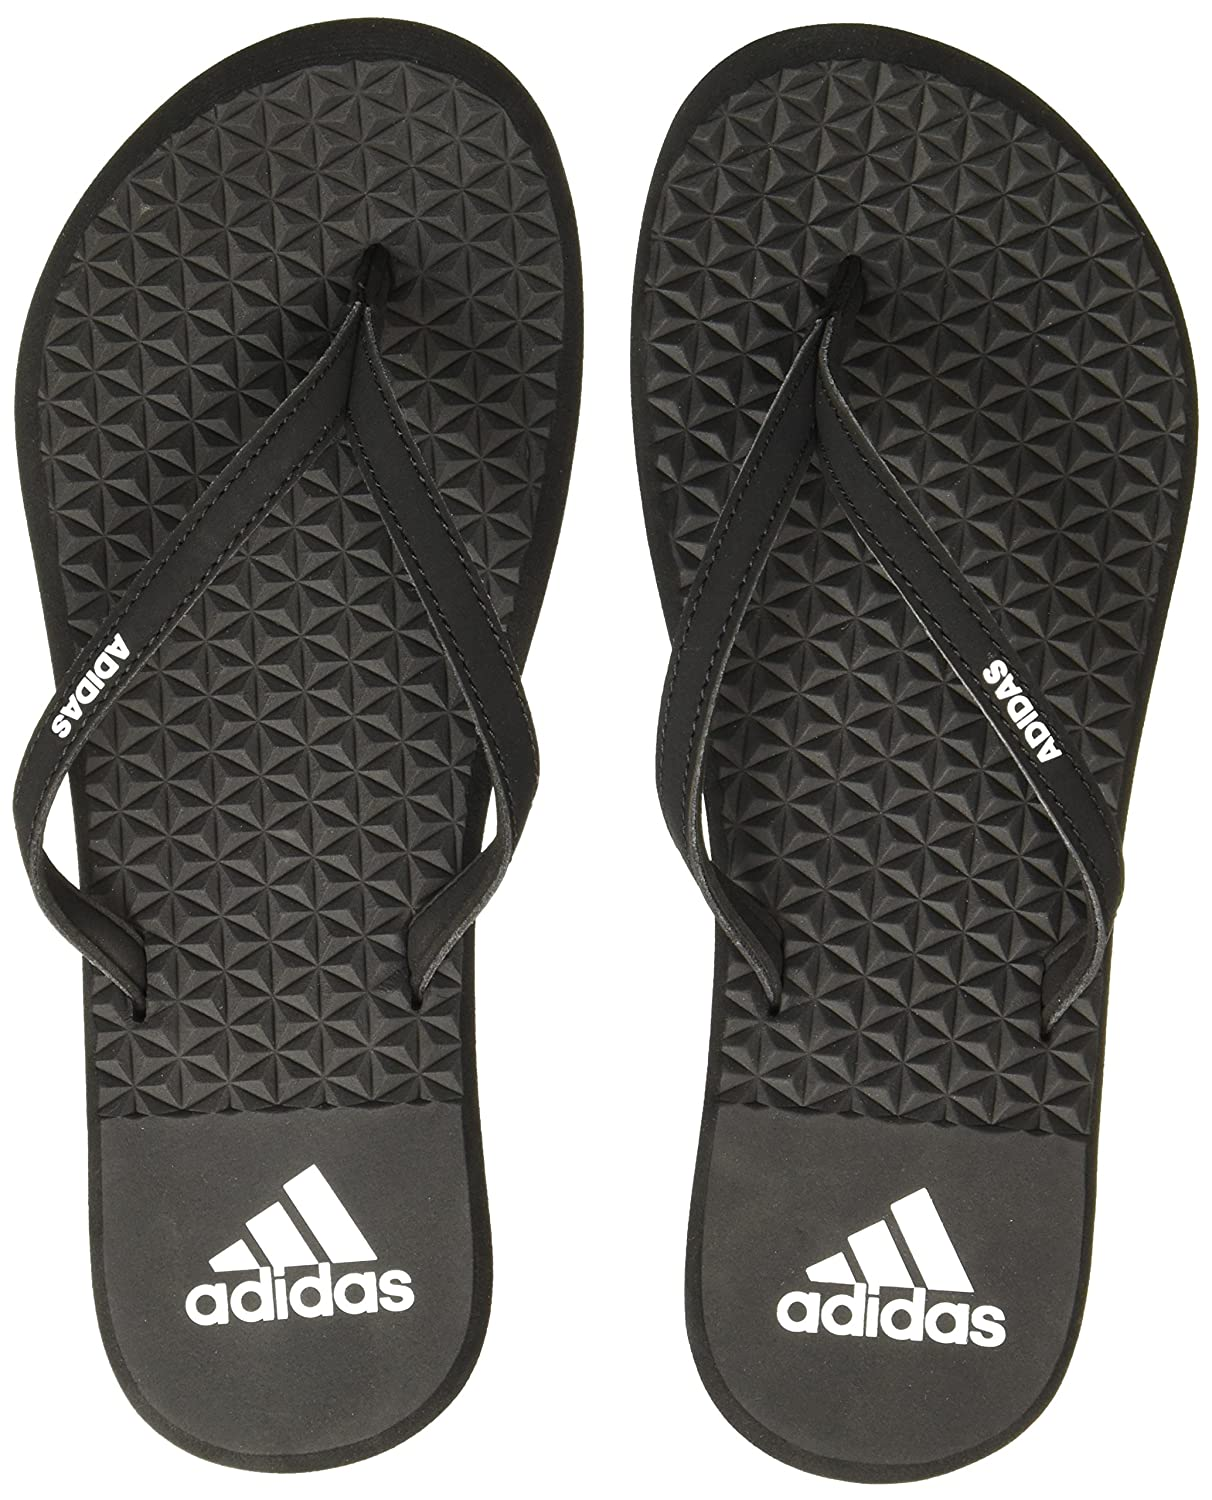 purchase cheap 32834 e5c19 adidas Eezay Flip Flop, Infradito Donna Amazon.it Scarpe e b